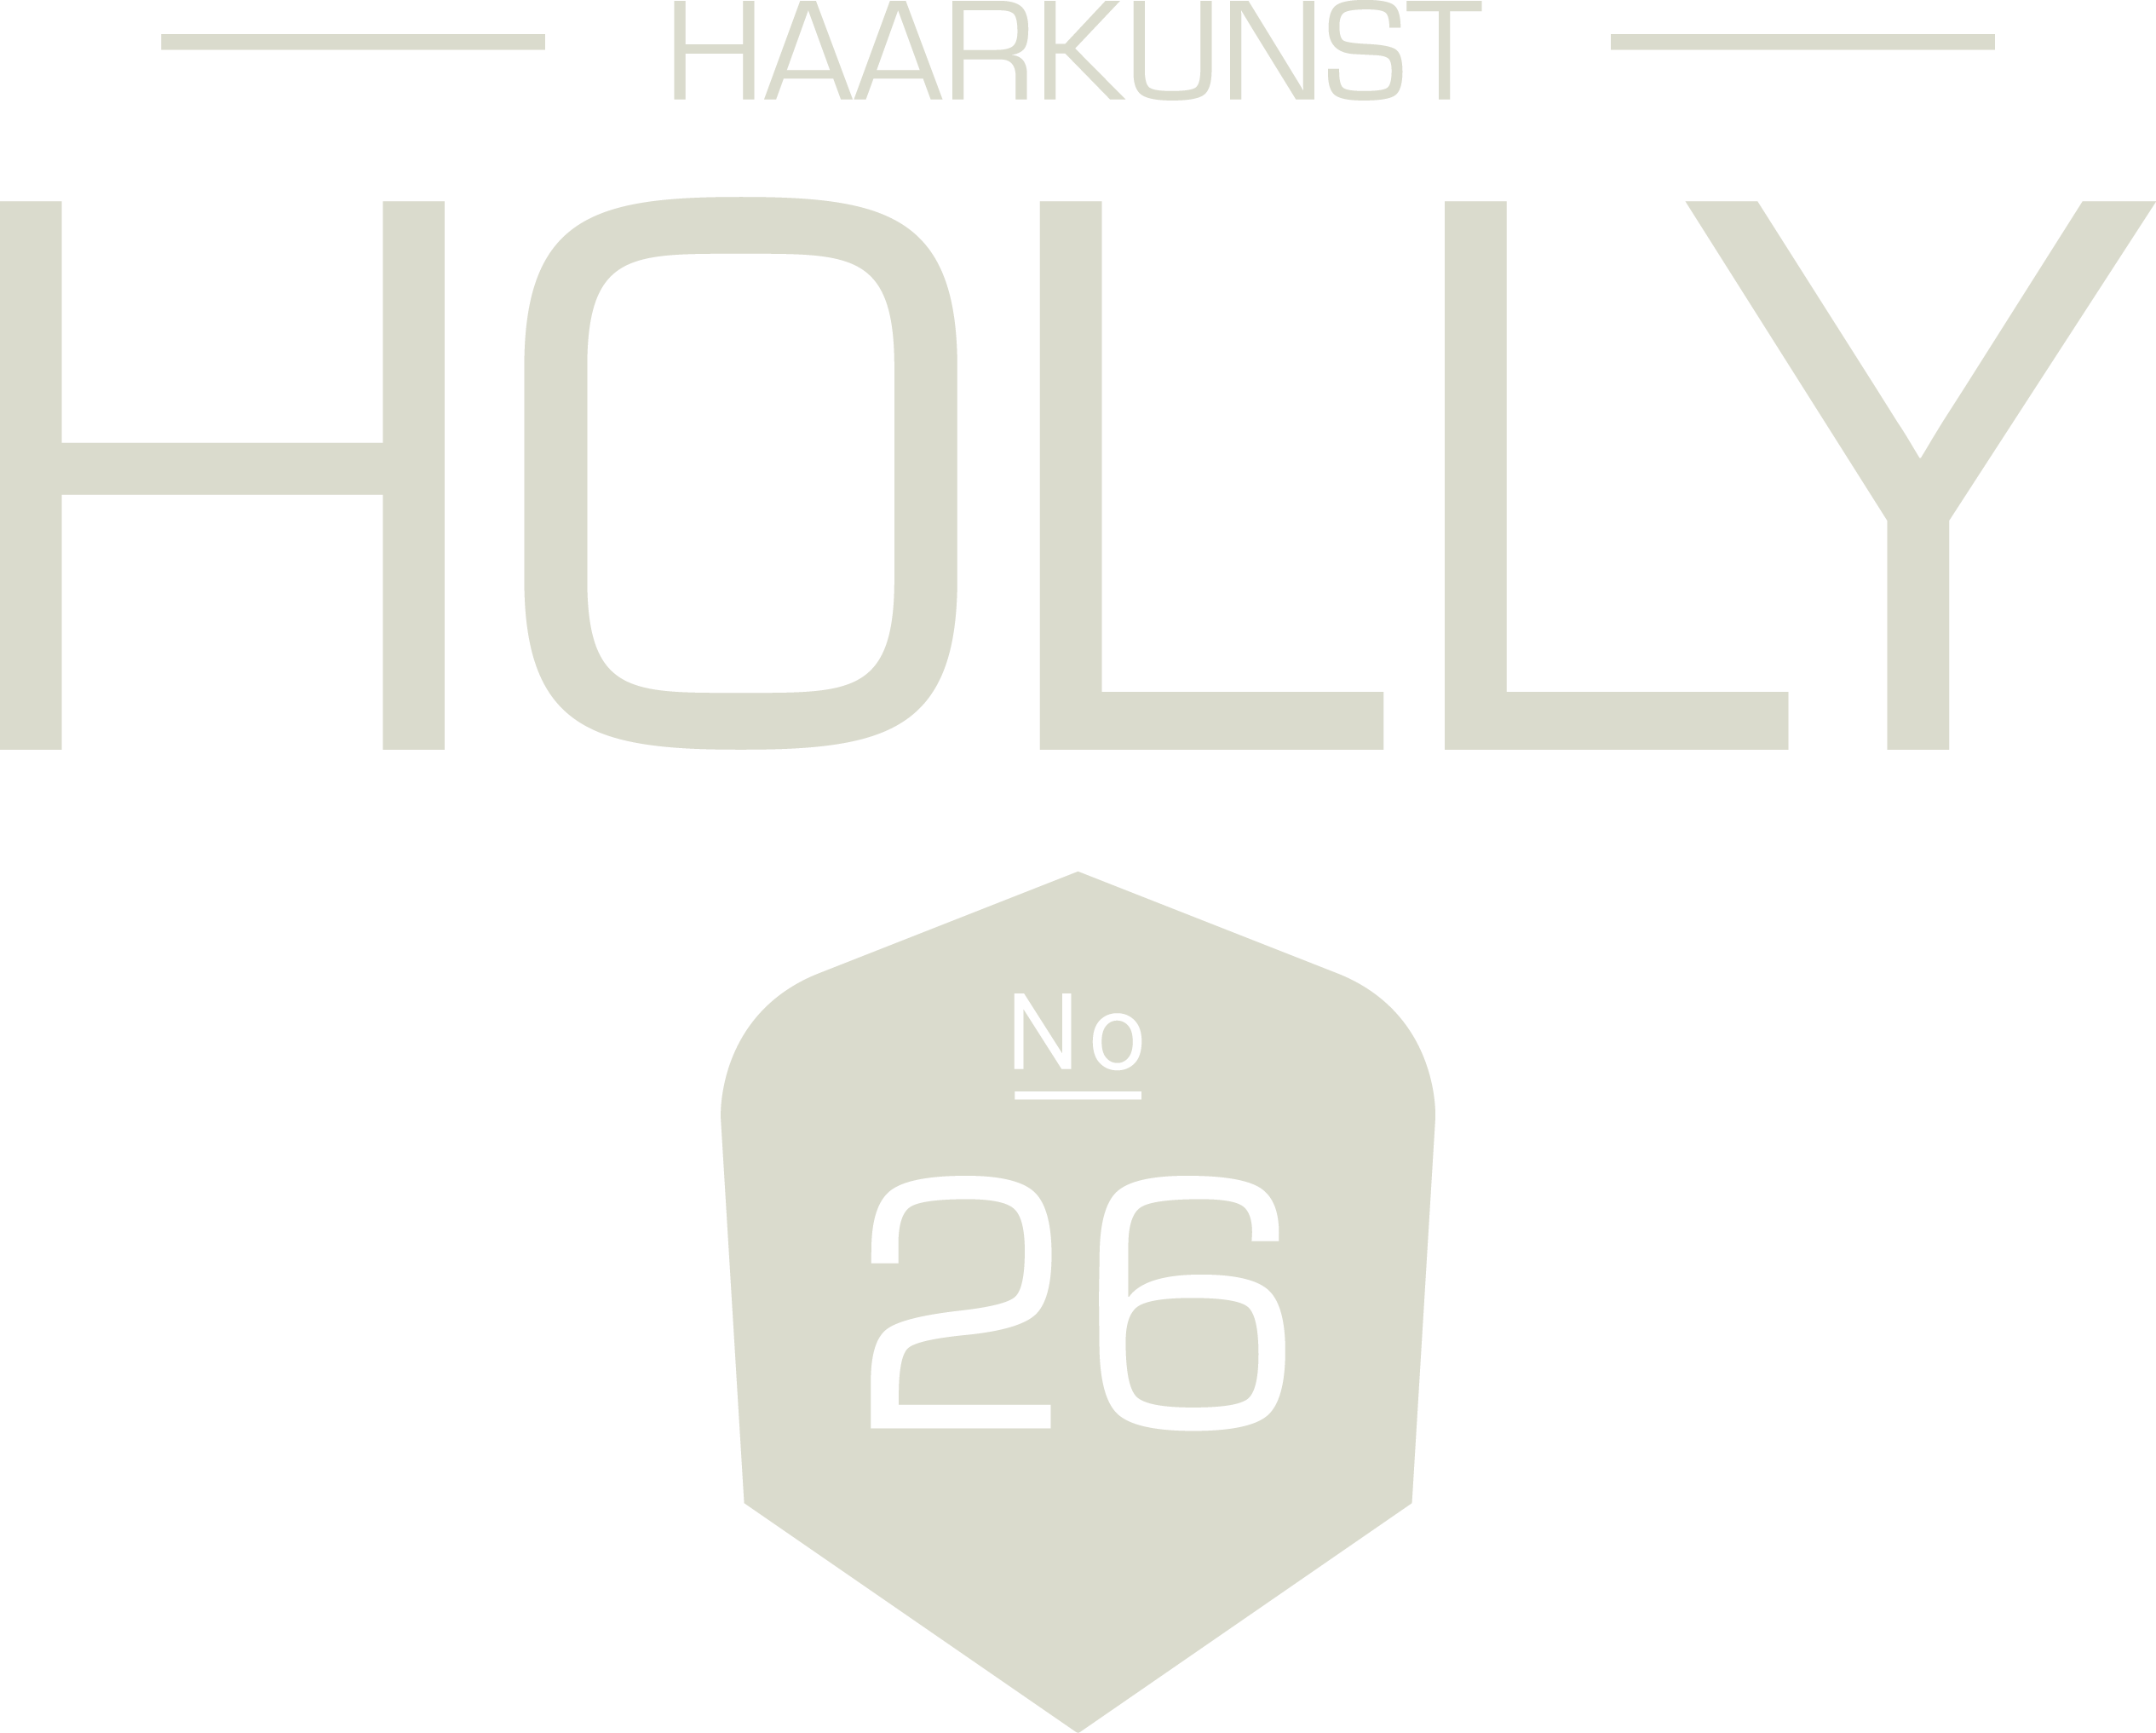 Holly no 26